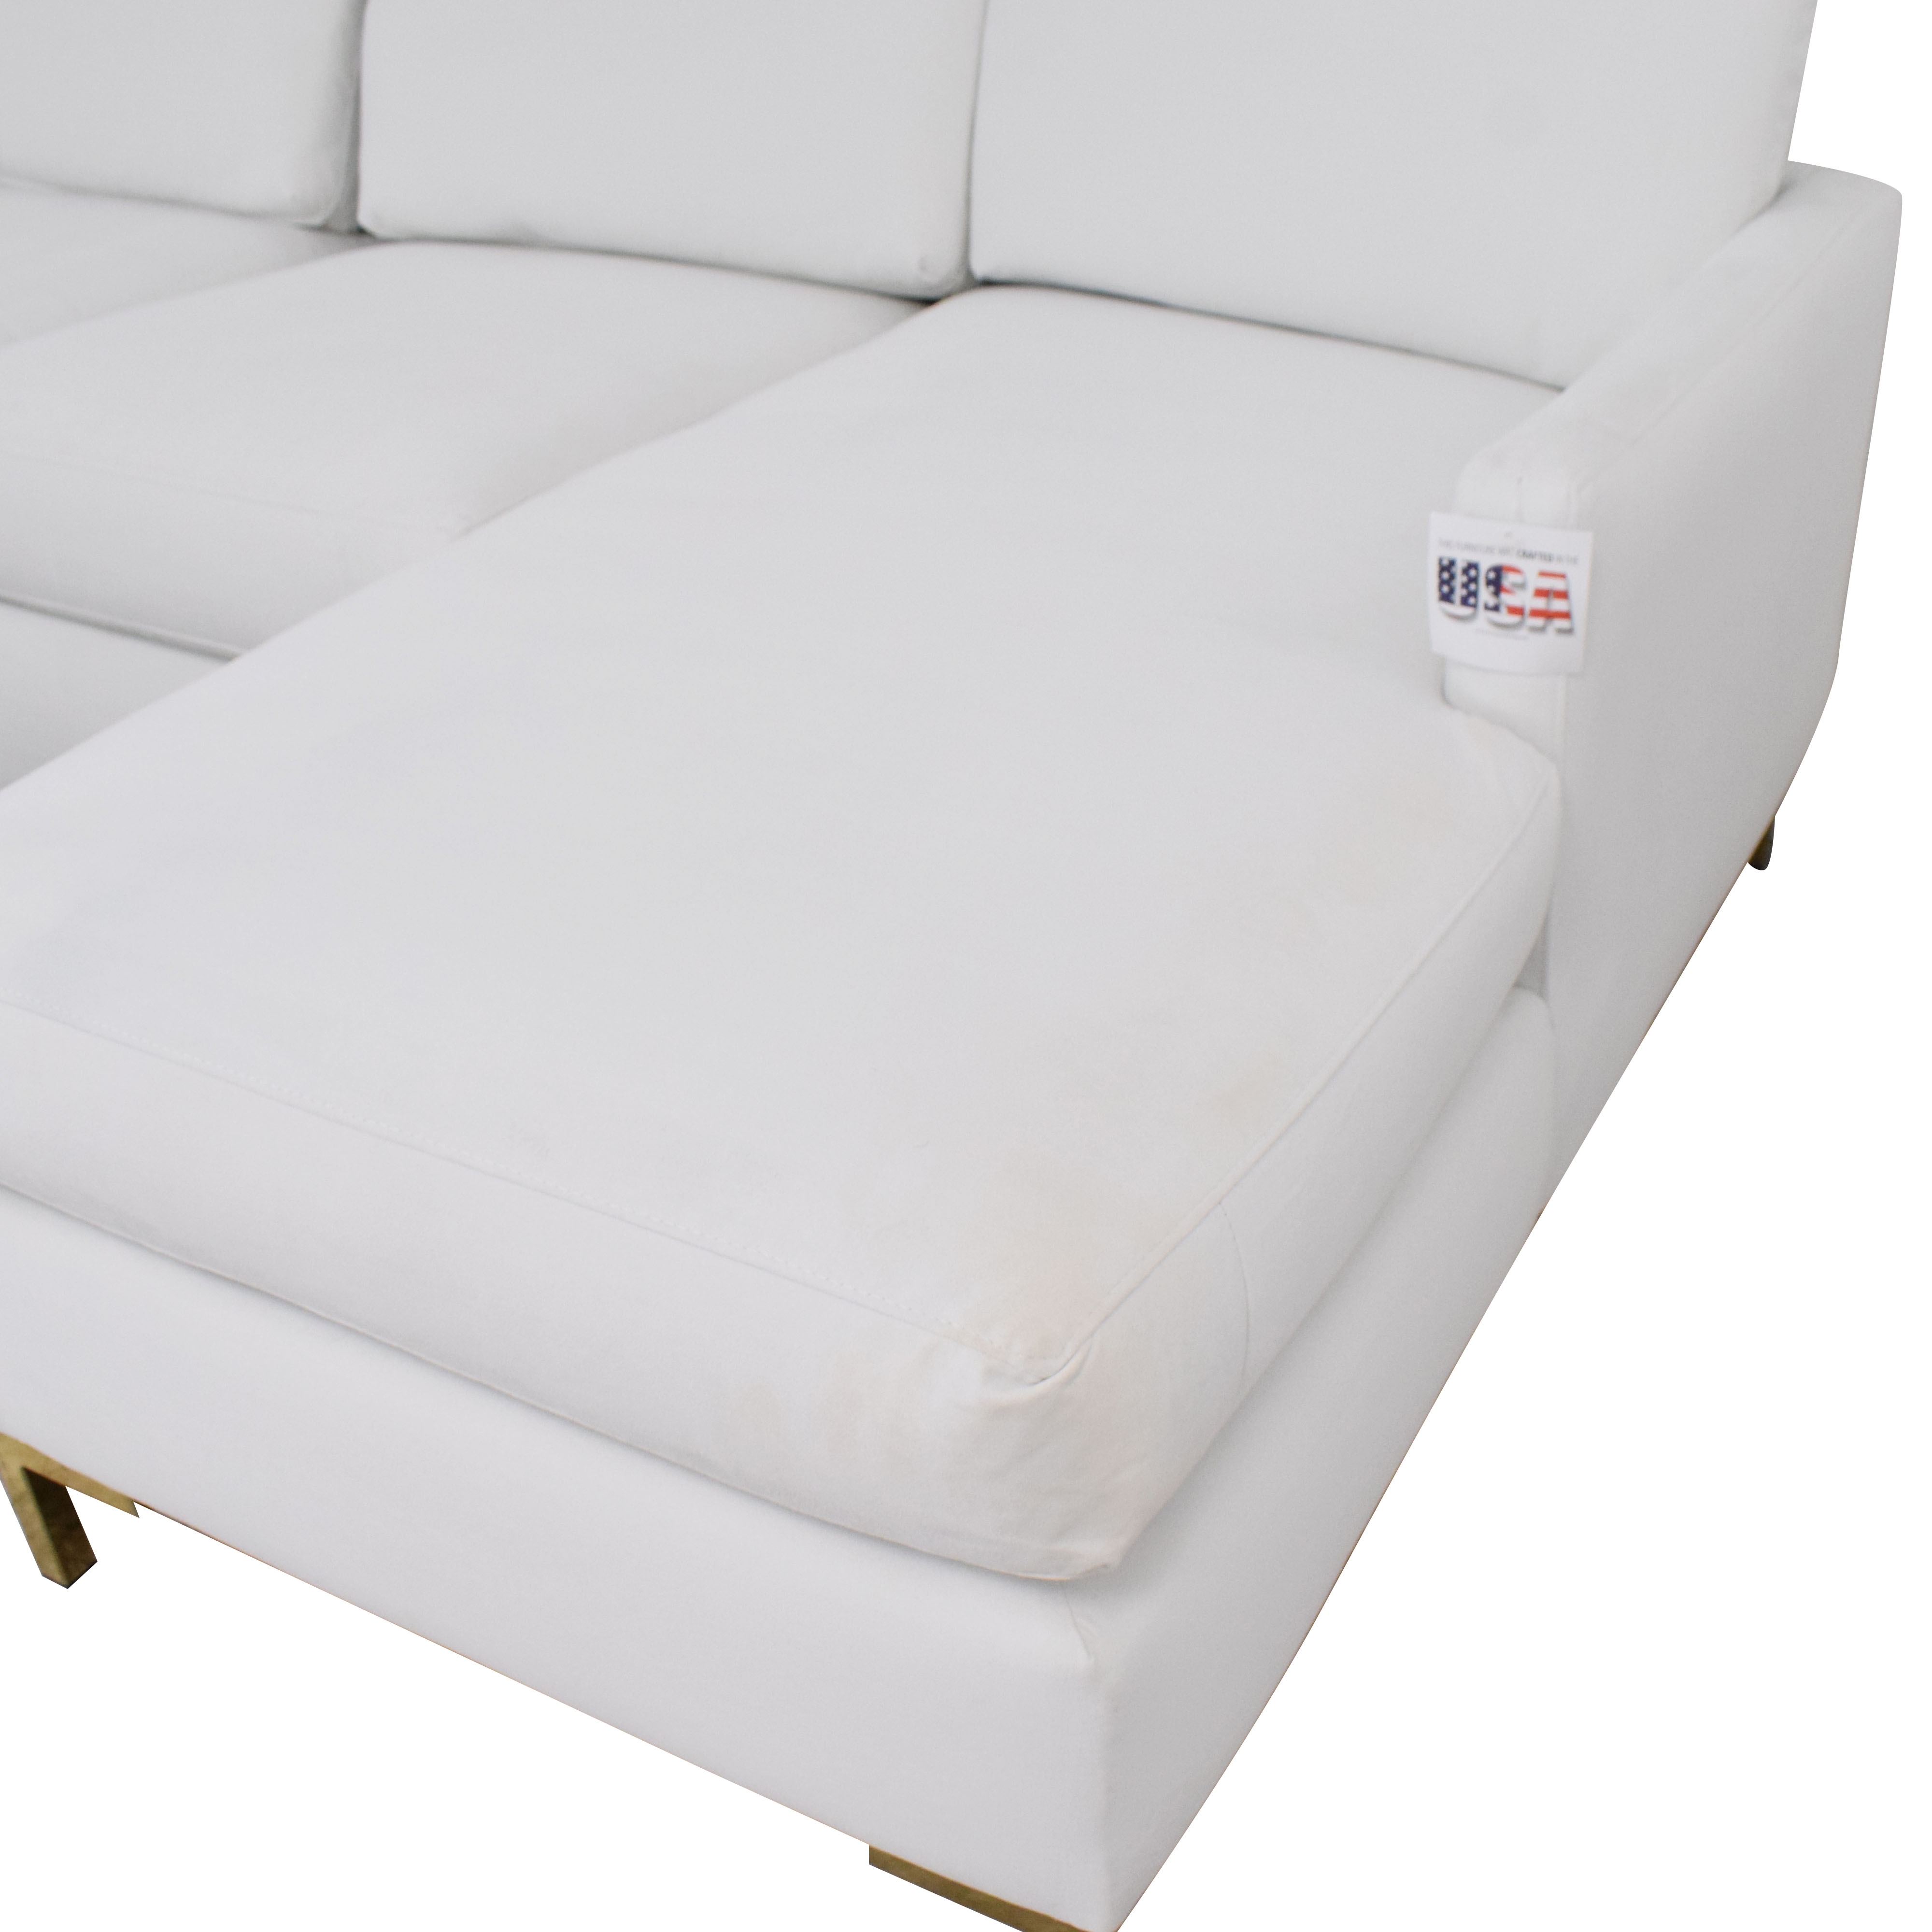 shop The Inside Modern Sectional-Right Facing Sofa The Inside Sofas